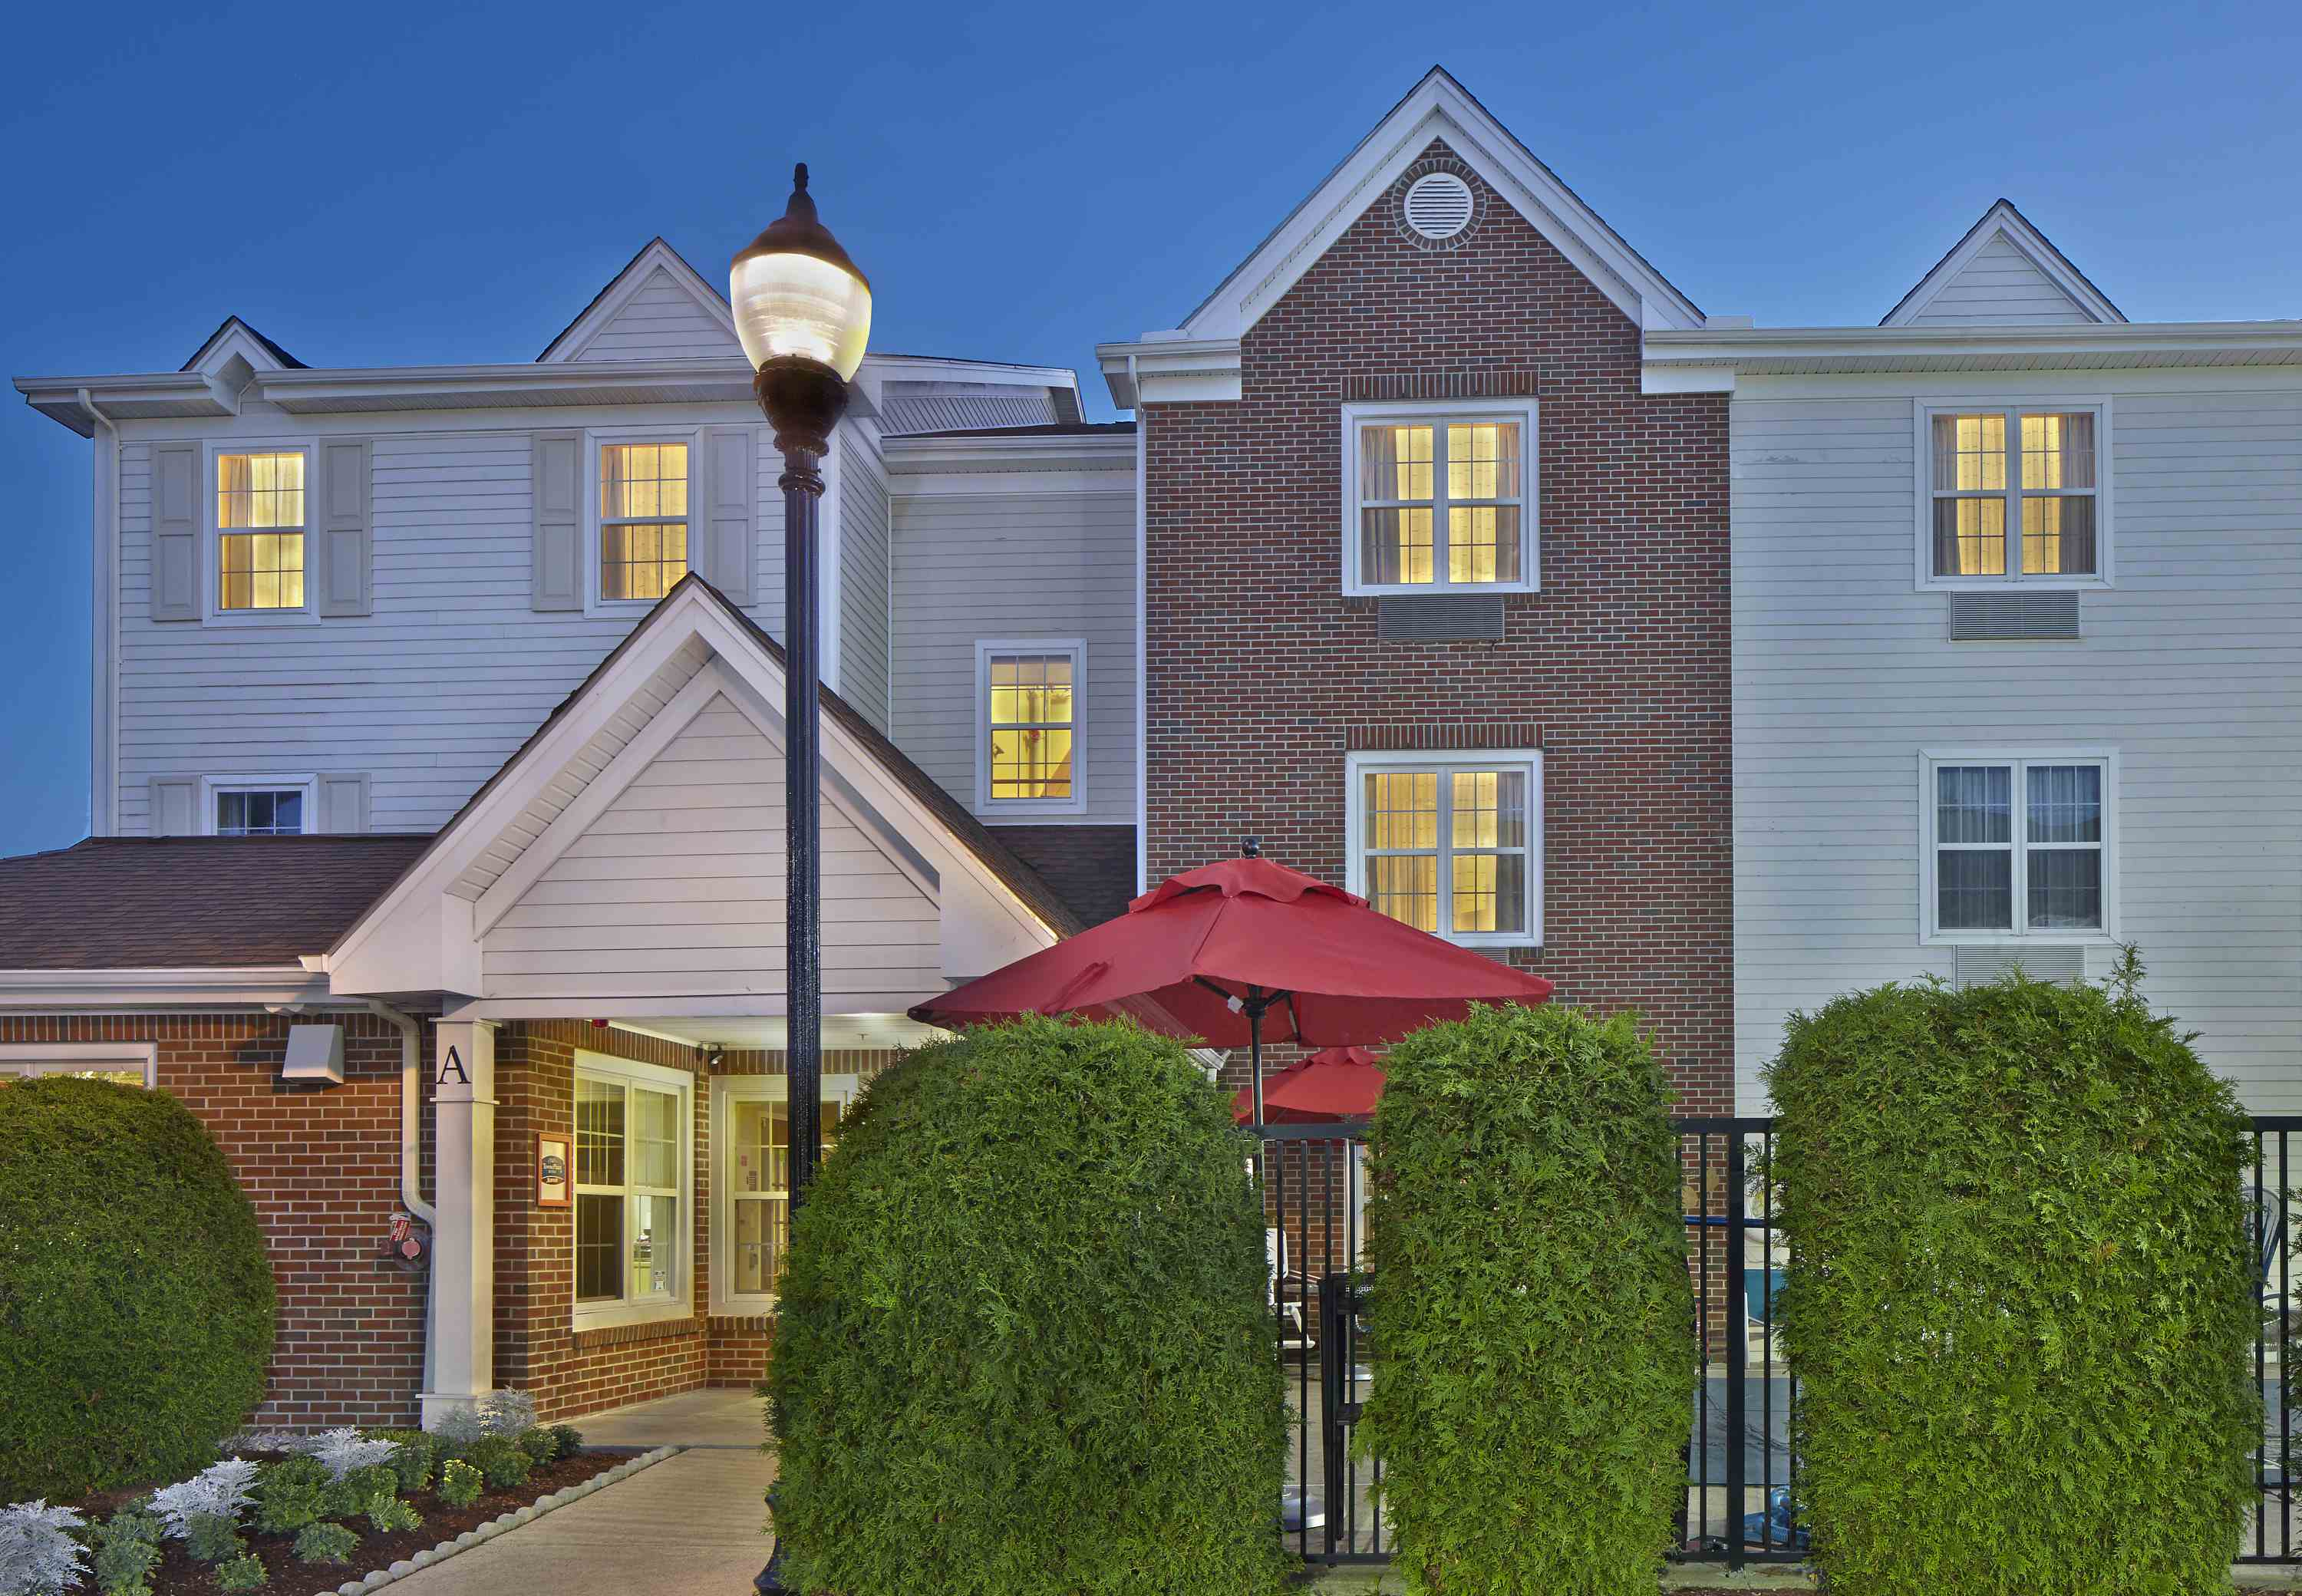 TownePlace Suites by Marriott Boston Tewksbury/Andover image 7